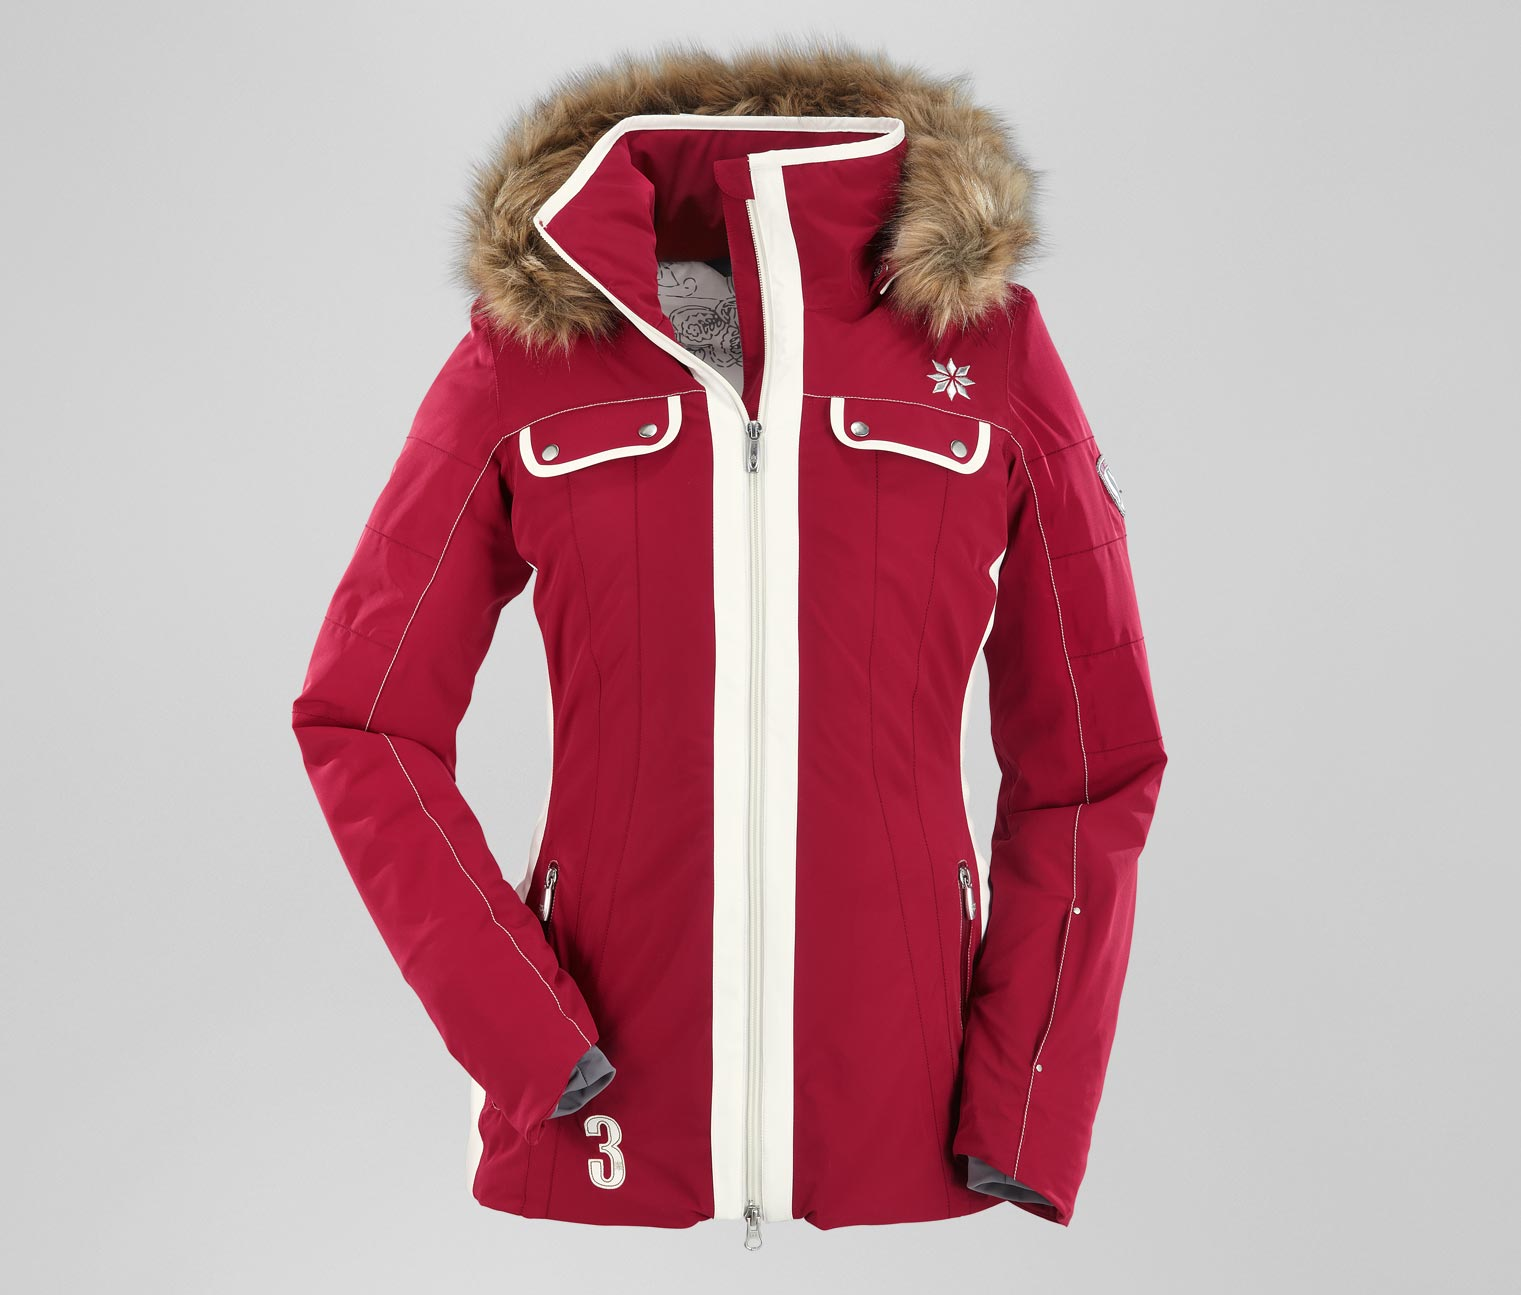 The Phibee women's ski jacket ample / waterproof breathable APTRO Women's Ski Jacket High Windproof Waterproof Technology Snow Jacket Coat. by APTRO. $ - $ $ $ 85 Prime. FREE Shipping on eligible orders. Some sizes/colors are Prime eligible. out of .